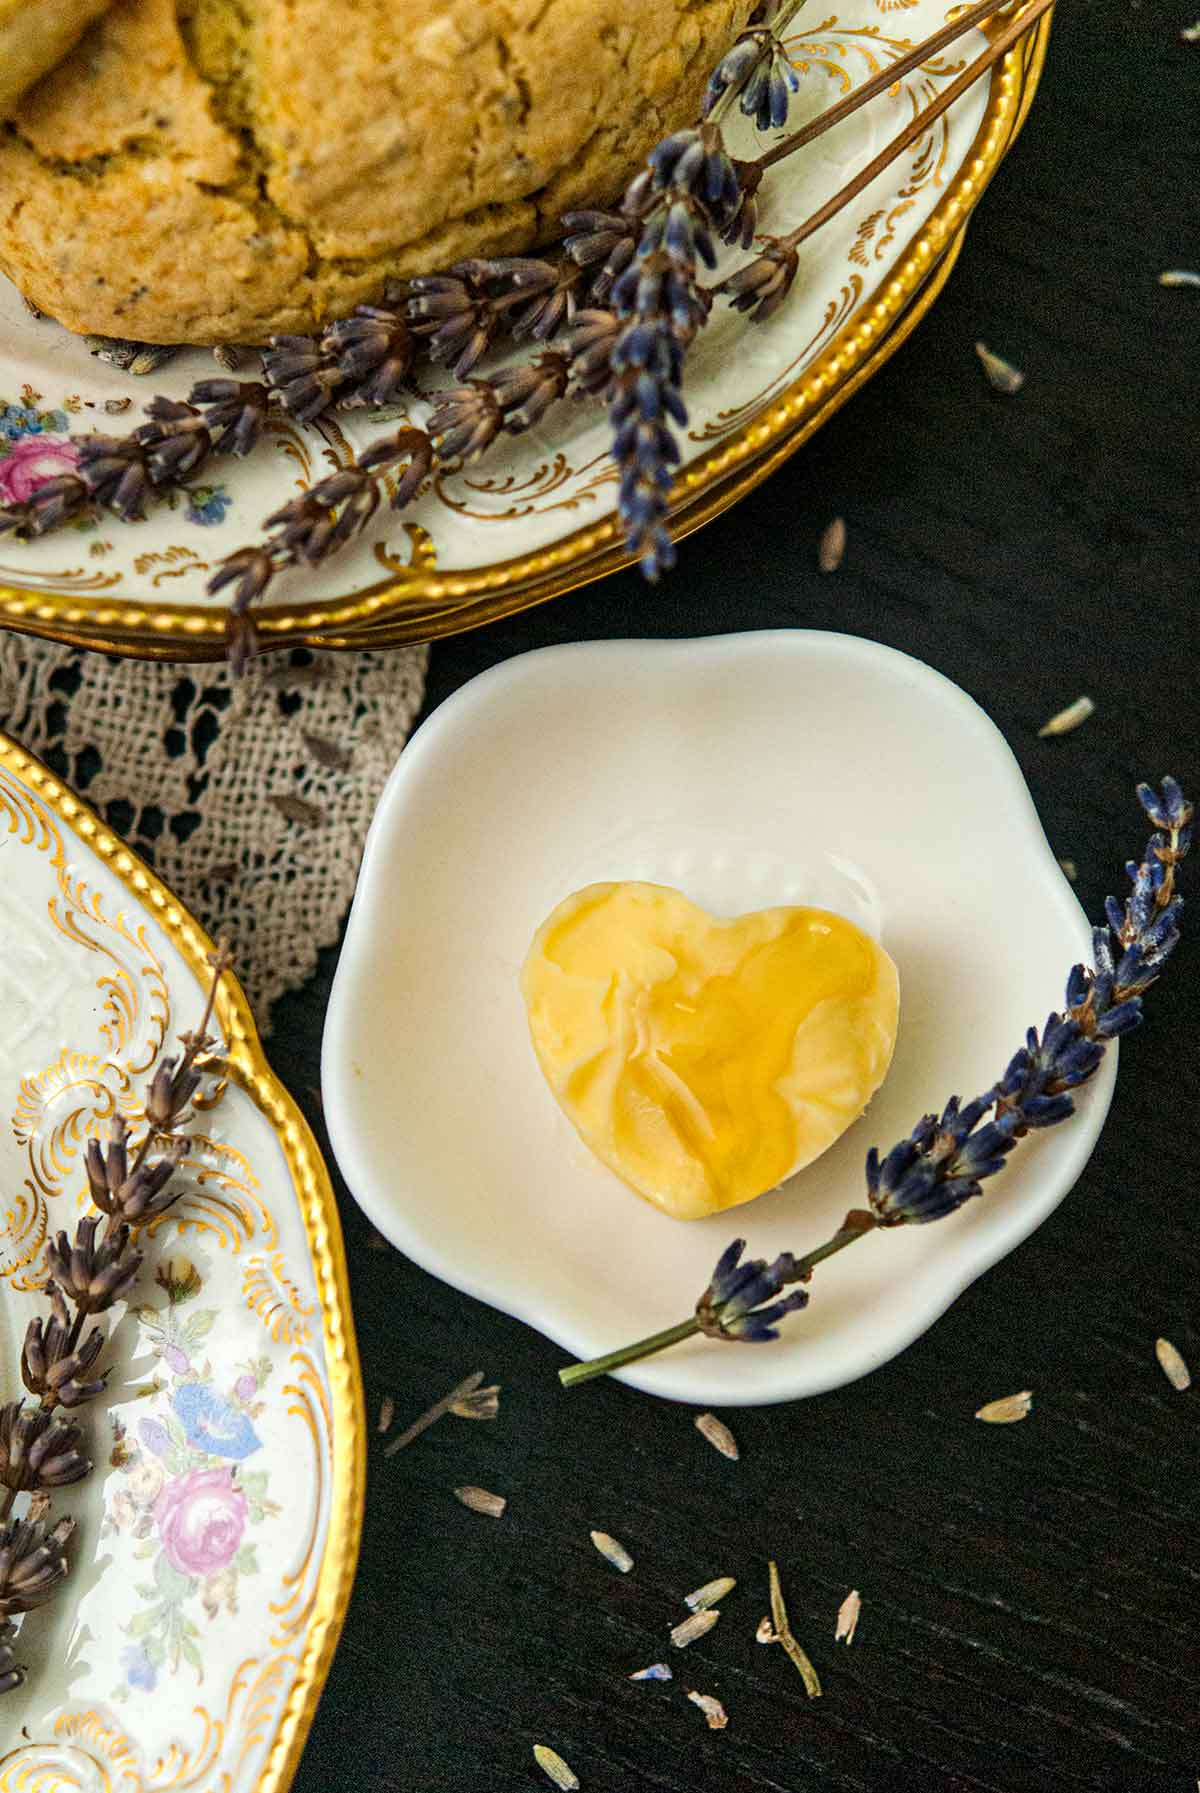 A small bowl with butter in the shape of a heart, garnished with honey and a sprig of lavender besides plates with lavender.